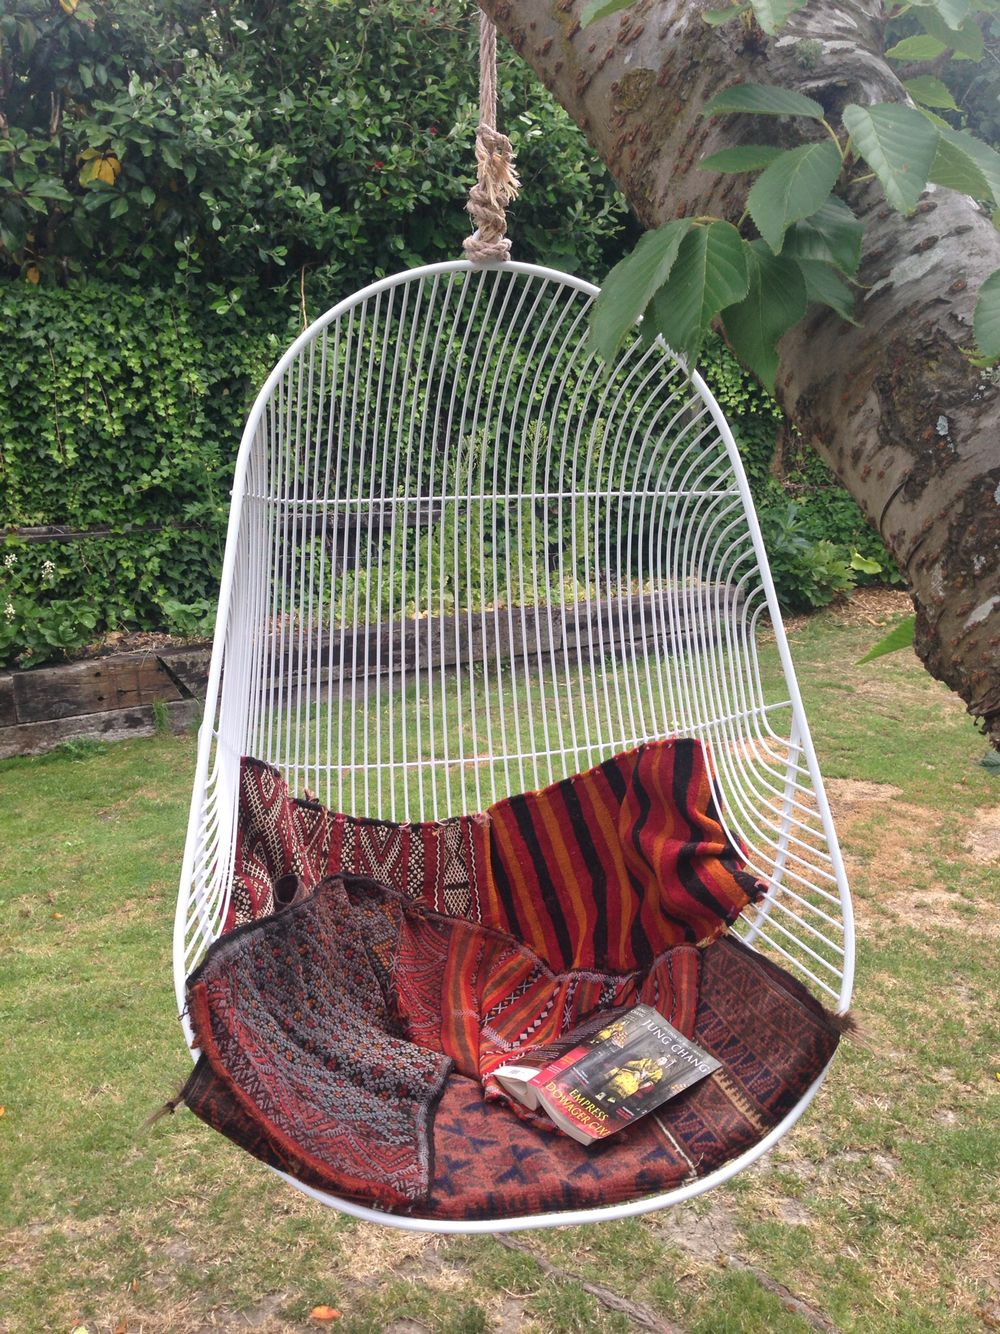 Wire Hanging Swing Chair Handcrafted Furniture From Www Icotraders Co Nz Hanging Chair Hanging Chair Outdoor Outdoor Hammock Chair